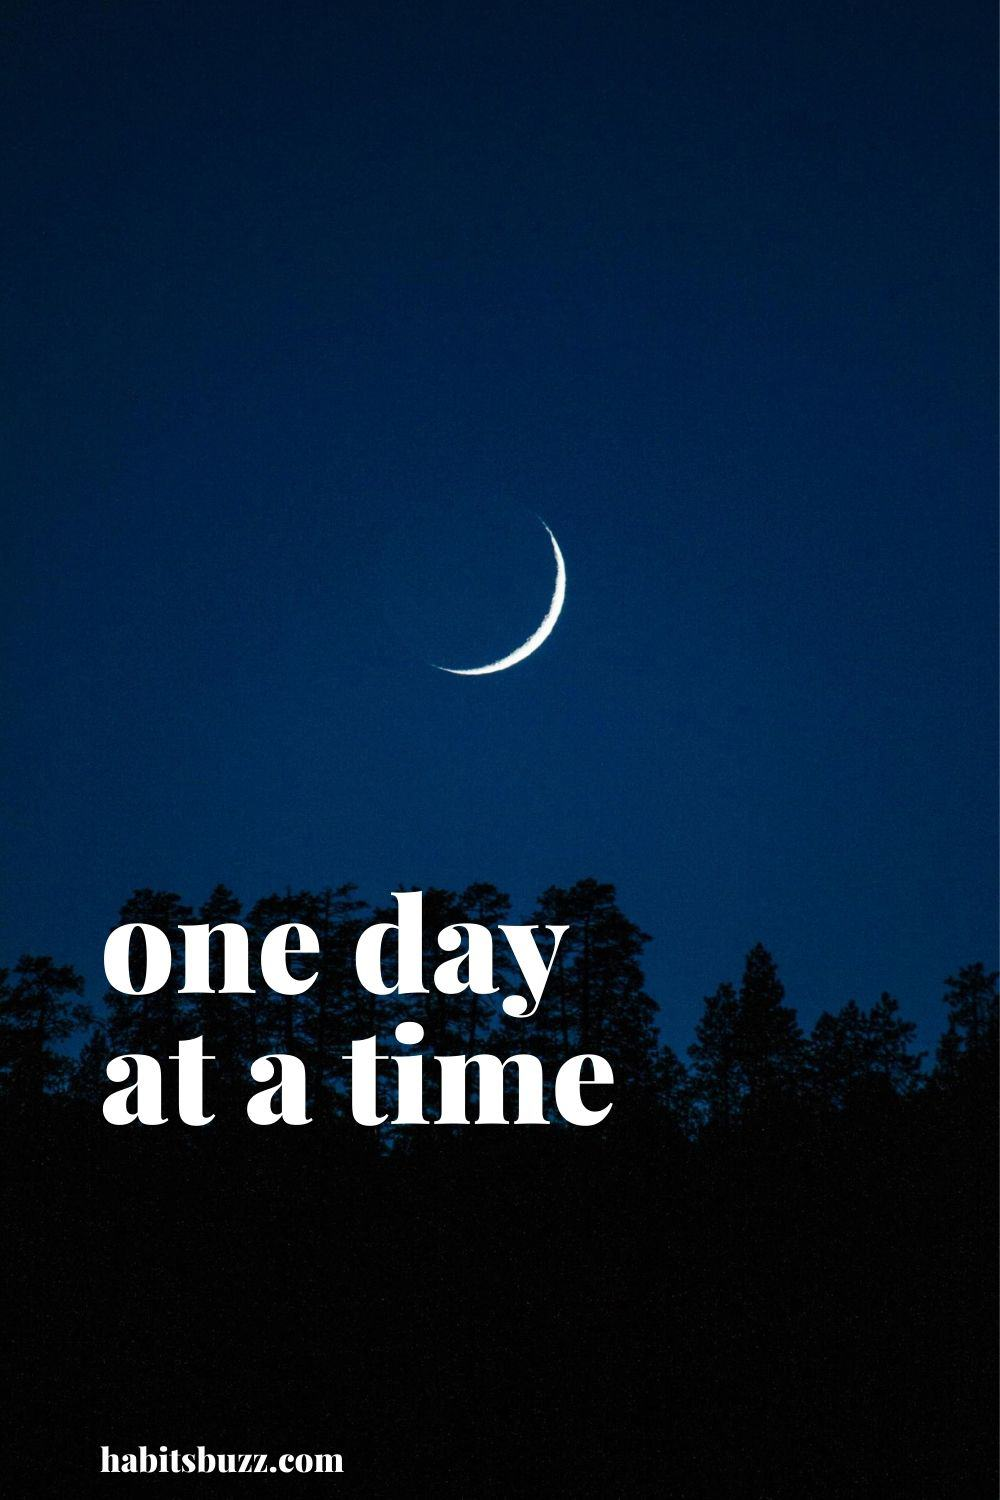 one day at a time - mantras to get through bad times in life